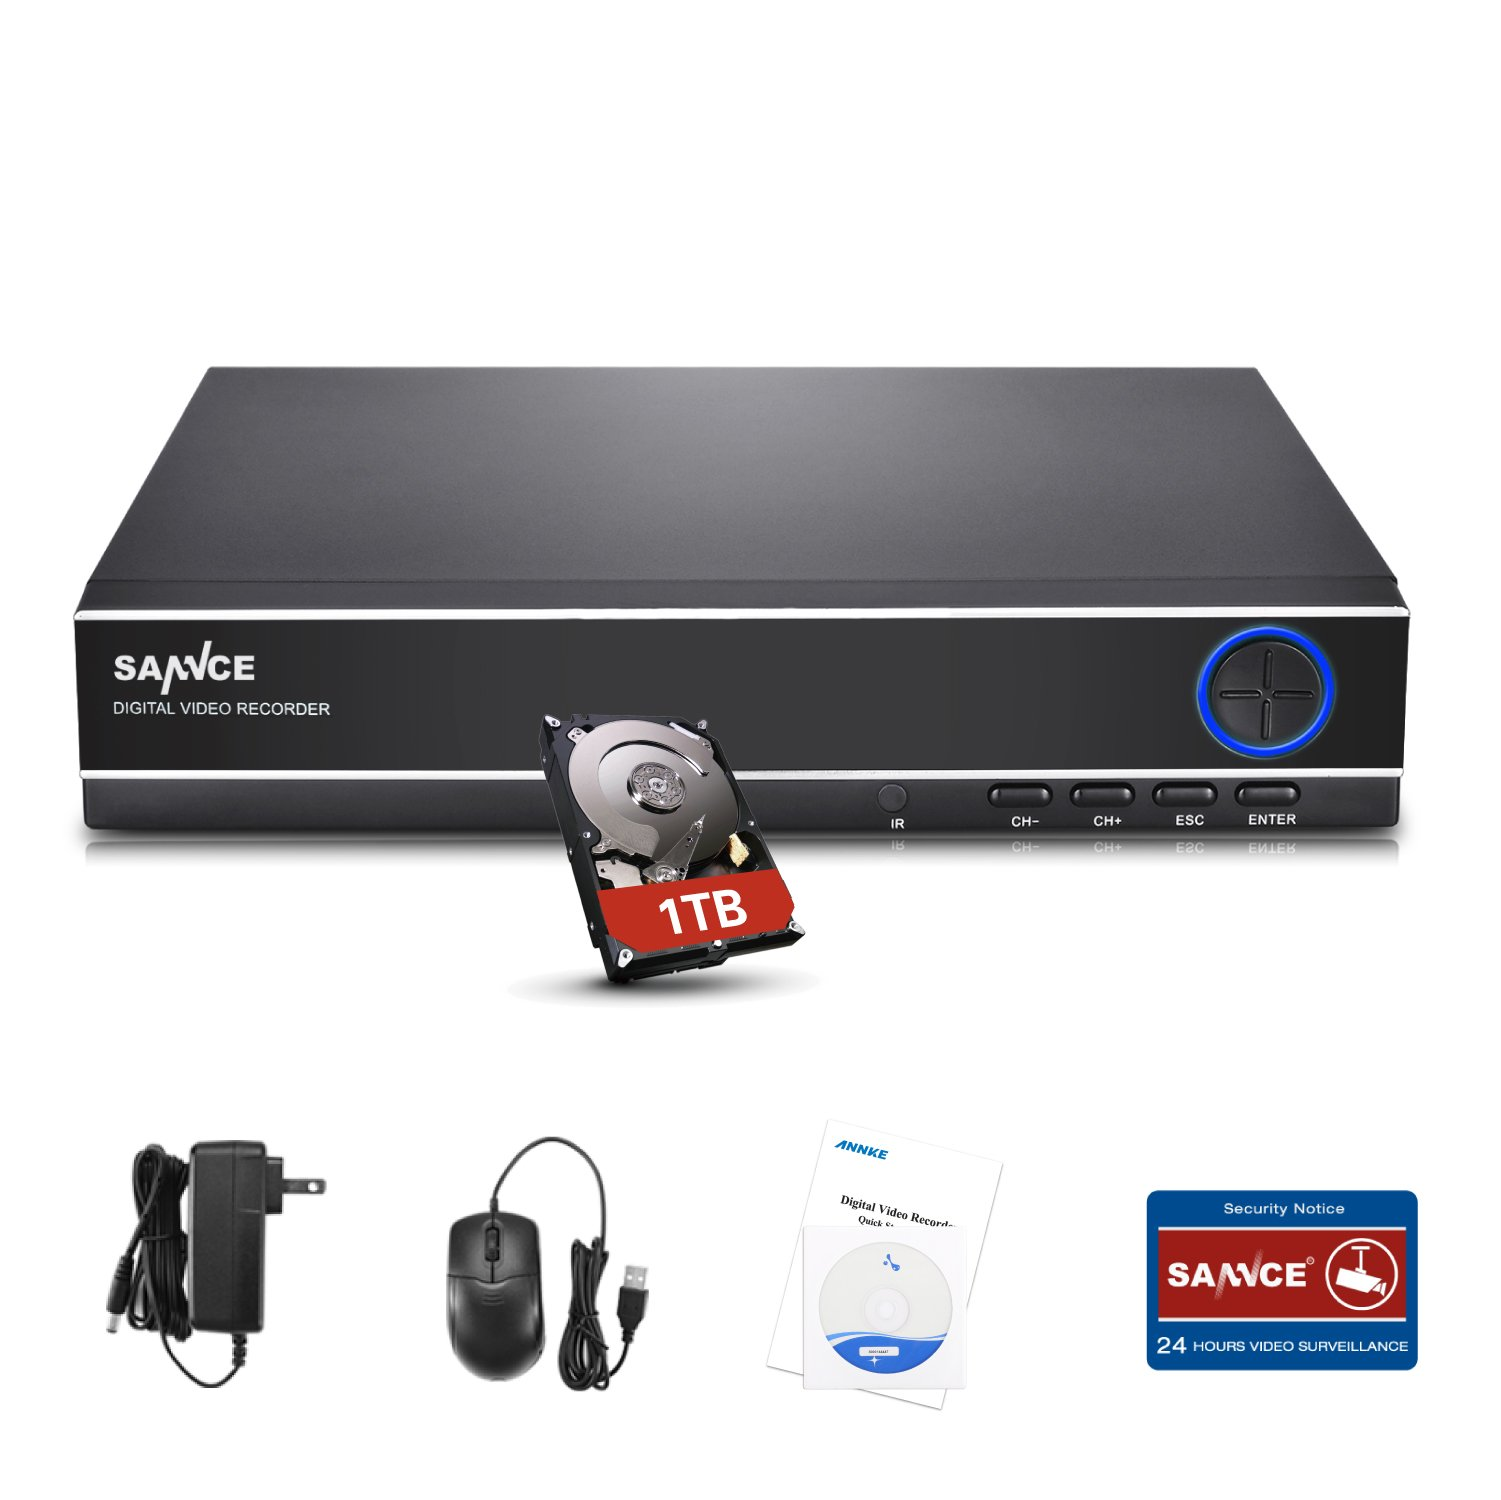 SANNCE Upgraded DVR Recorder 5-in-1 4 Channel 1080N Digital Video Recorder with 1TB Hard Drive, HDMI VGA Output, Phone Remote Access(Not TV Box Recorder)